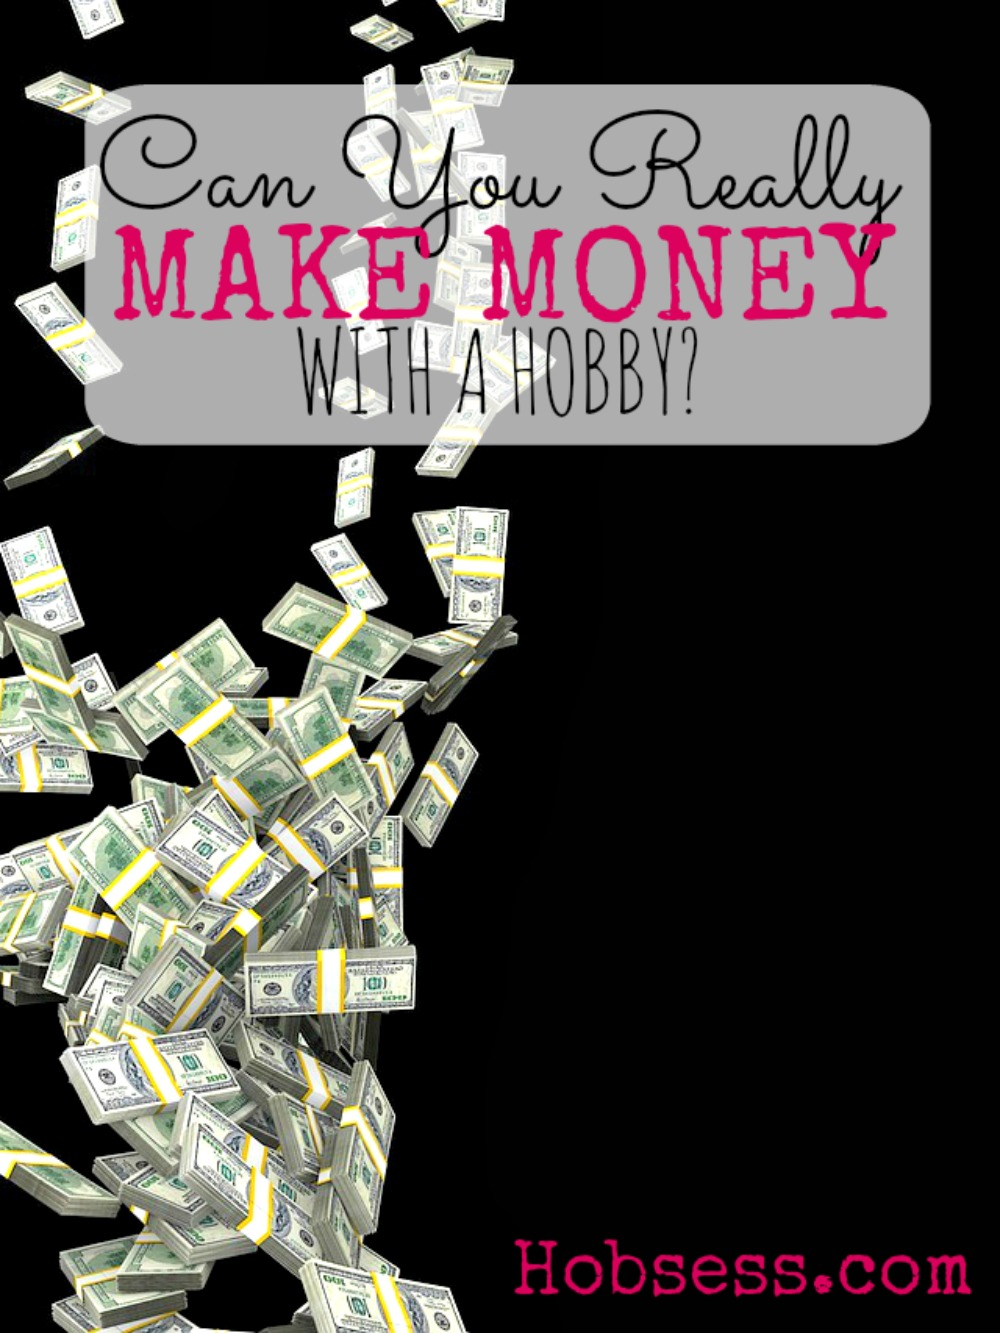 Find out how to make money with your hobby. Starting today.